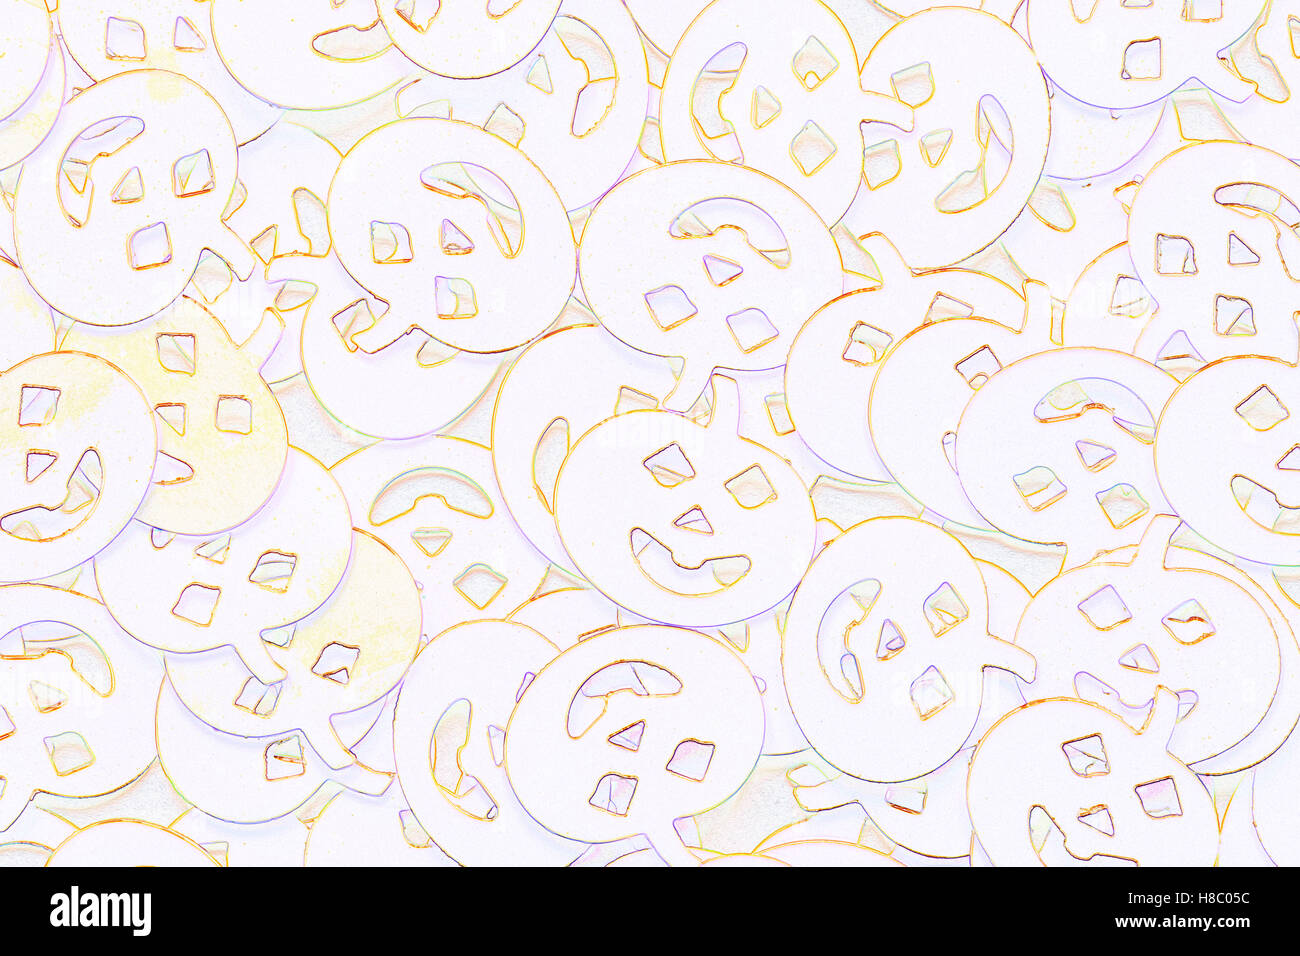 Line drawings effect of Halloween Mystical Confetti - pumpkins faces decorations spread out on white background - Stock Image